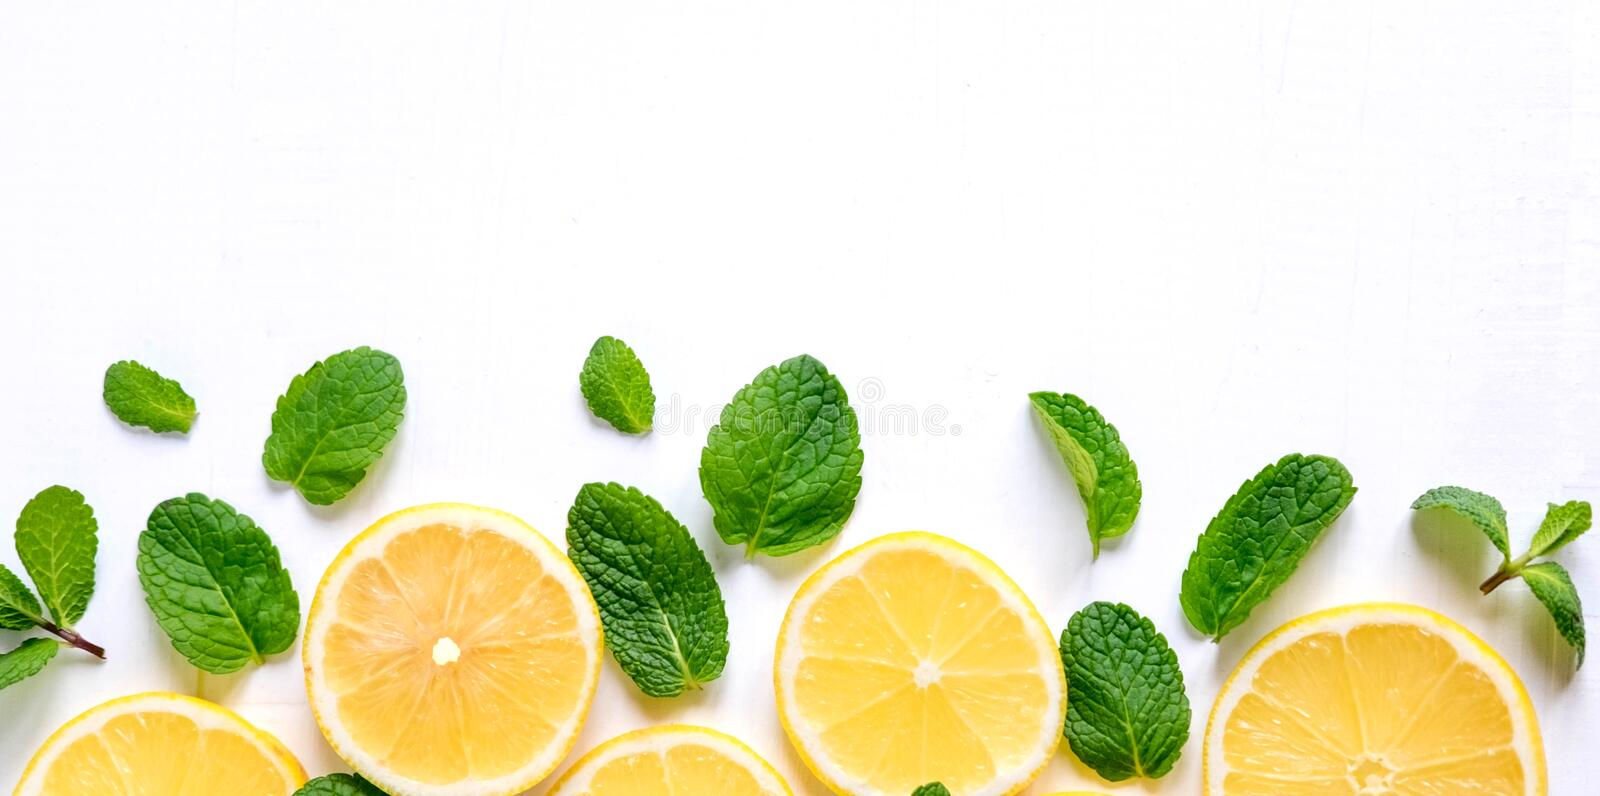 White background with lemon, orange slices and mint. Concept with fresh fruit. Lemon, Orange, Mint. View from above royalty free stock image